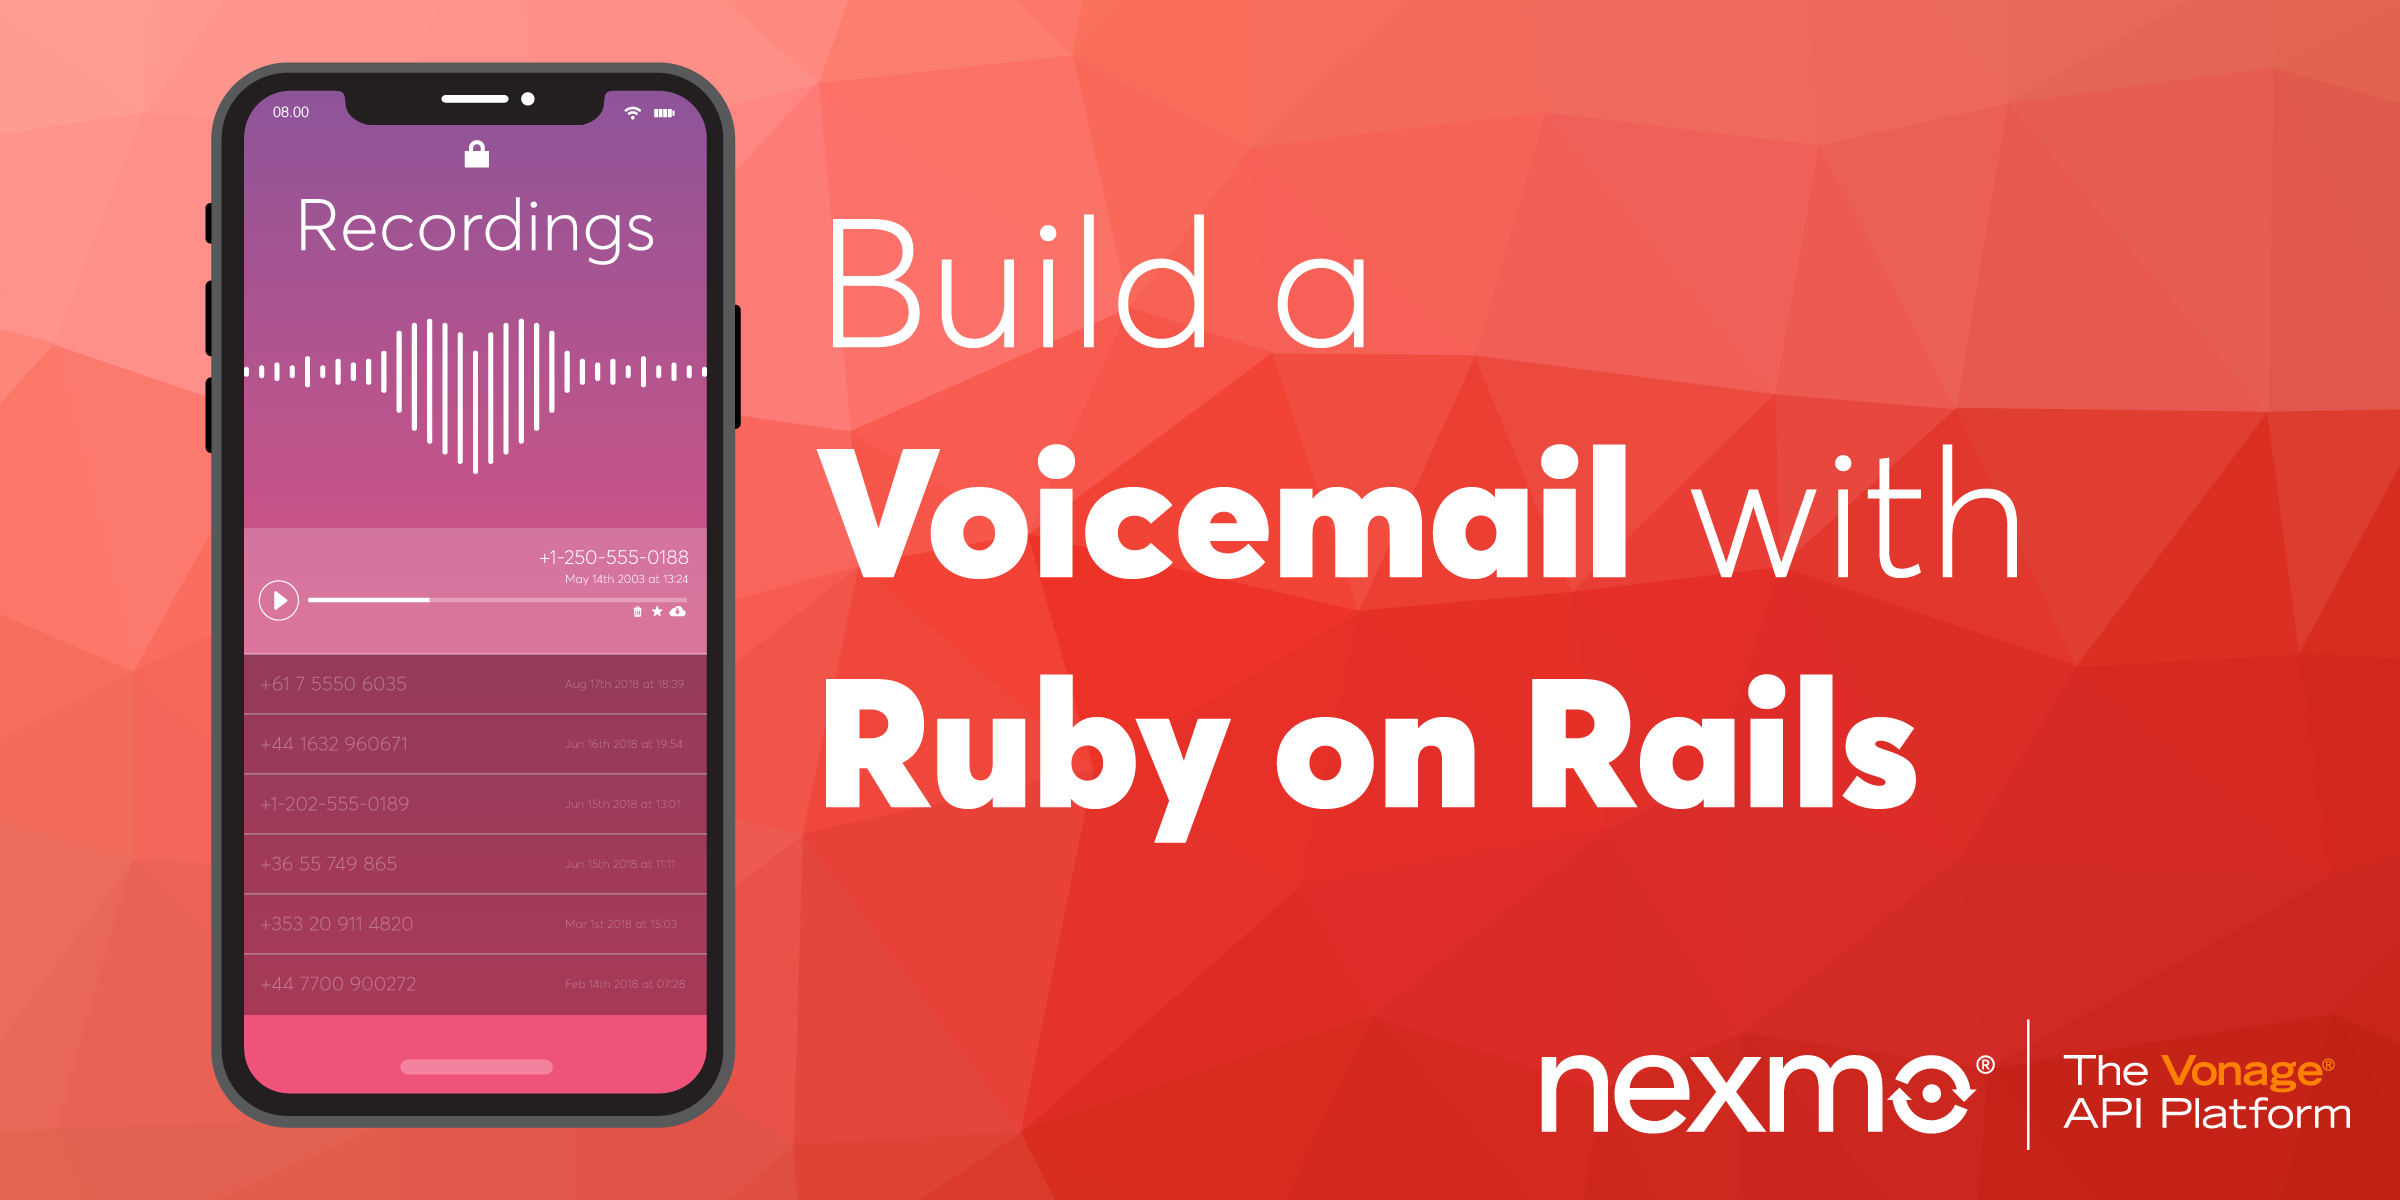 Build a Voicemail with Ruby on Rails - Nexmo Developer Blog